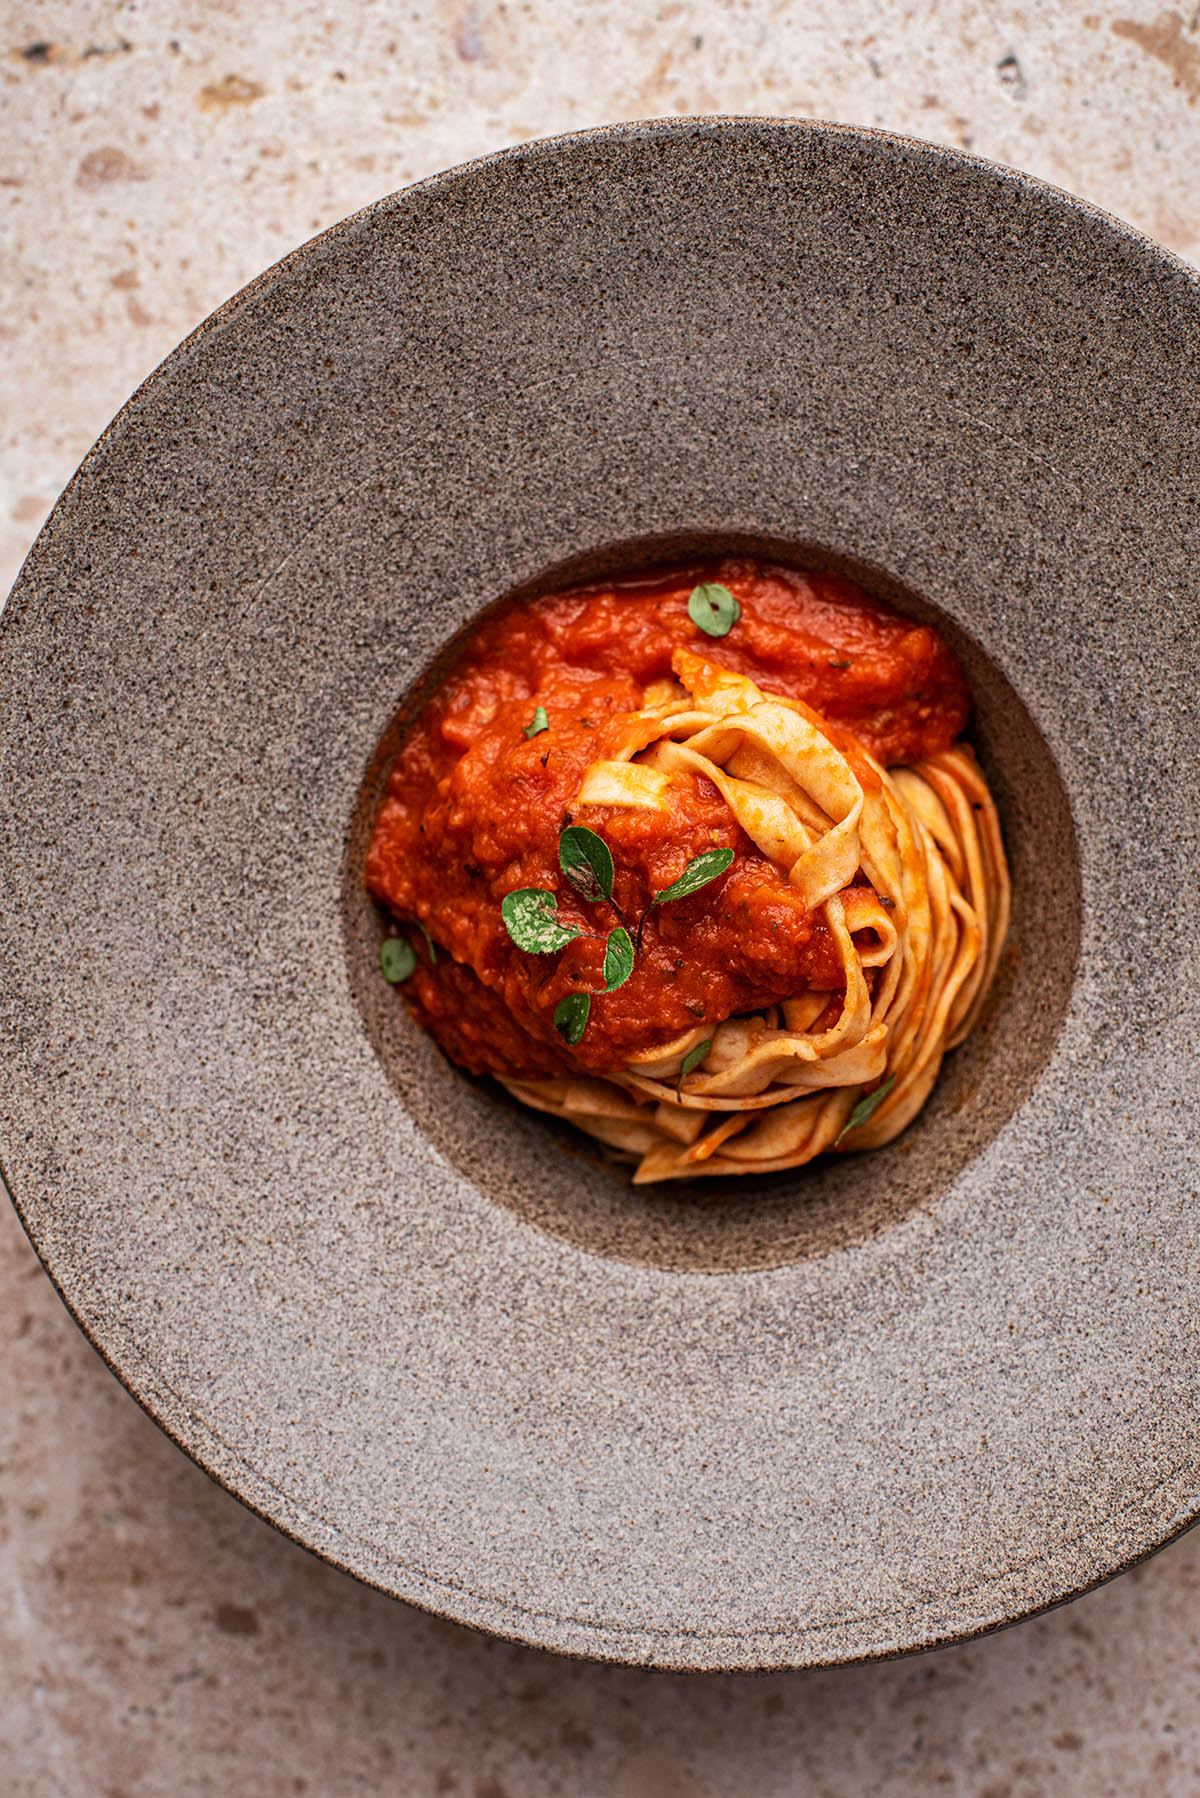 Linguine in a bowl with tomato sauce and oregano.